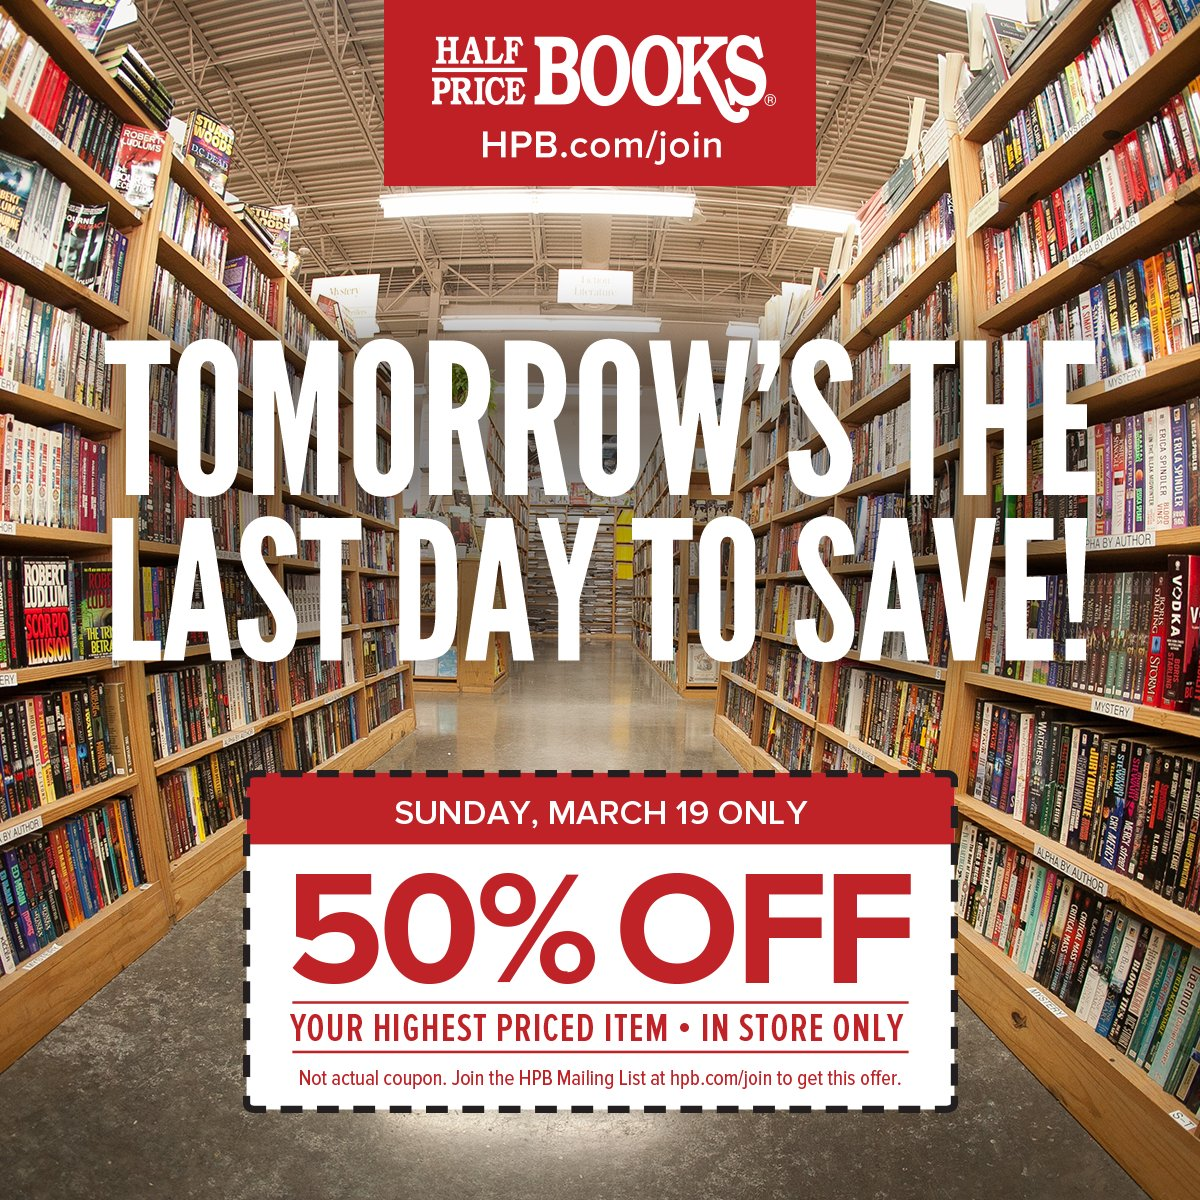 Half Price Books On Twitter Tomorrow Sign Up At Https T Co Okt0c1swav For This 50 Off Coupon